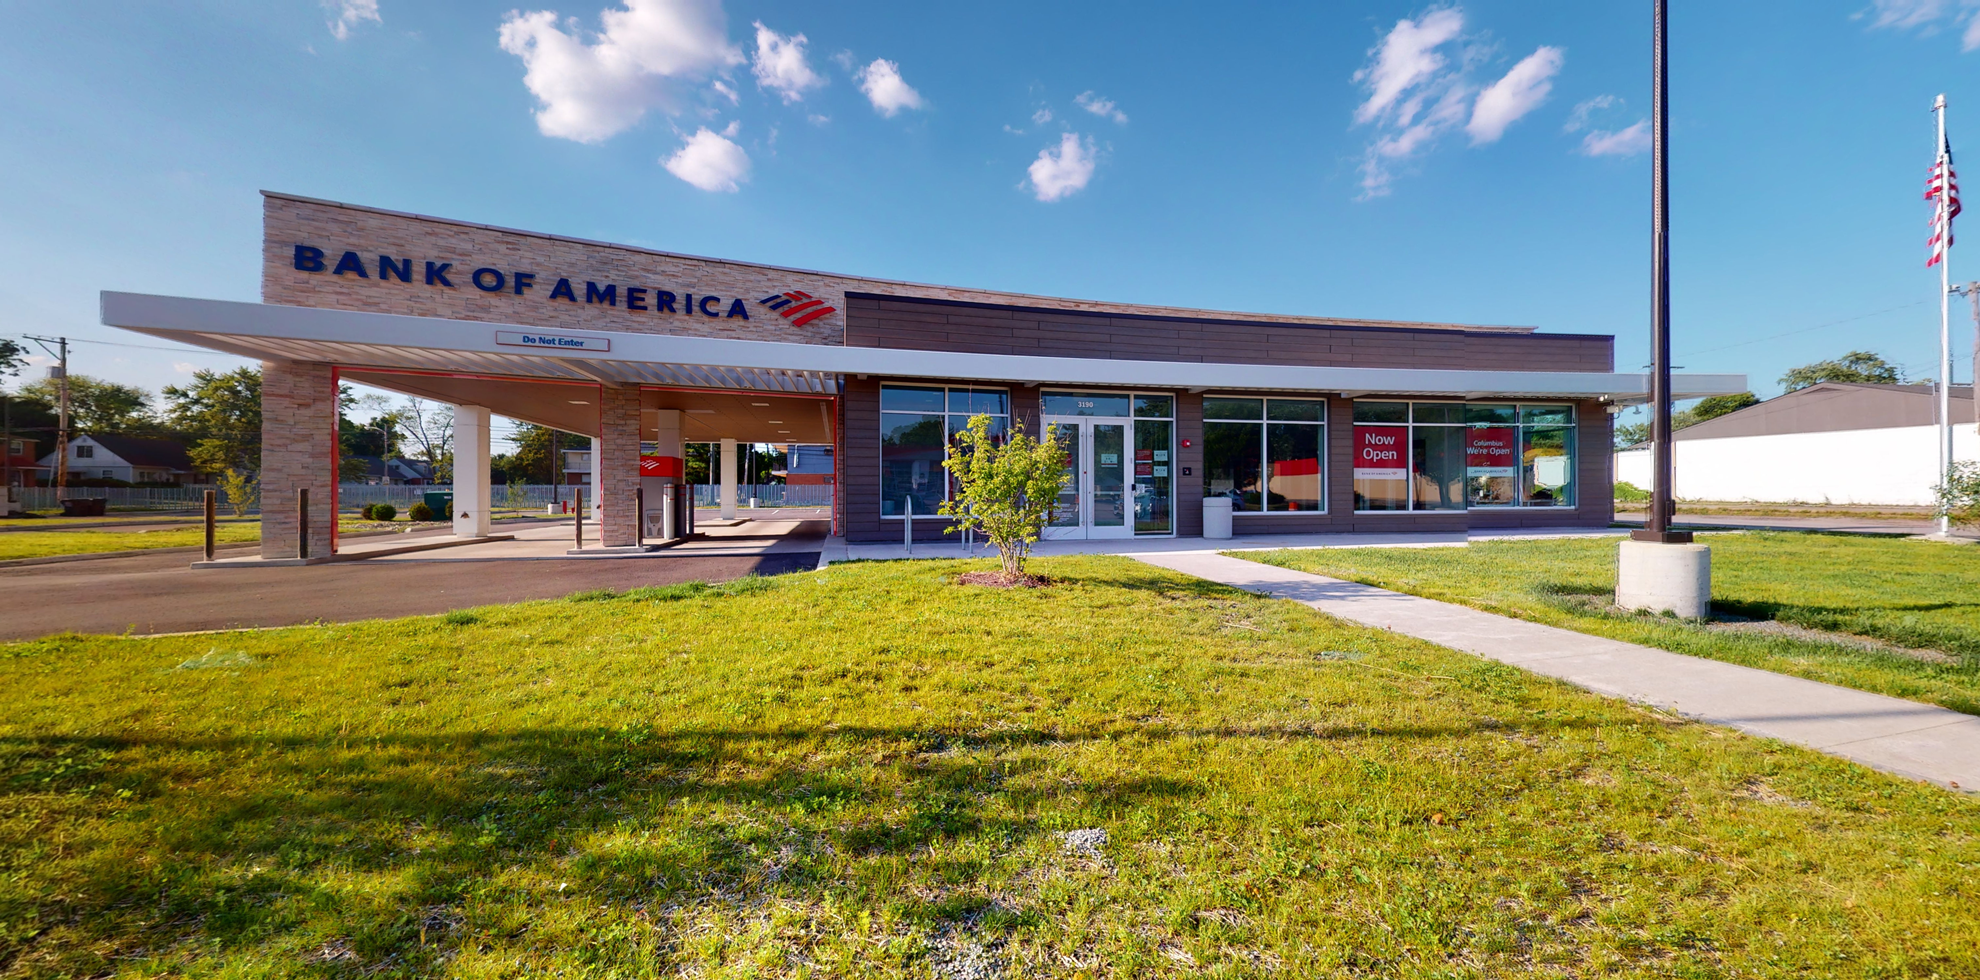 Bank of America financial center with drive-thru ATM | 3180 E Main St, Columbus, OH 43213